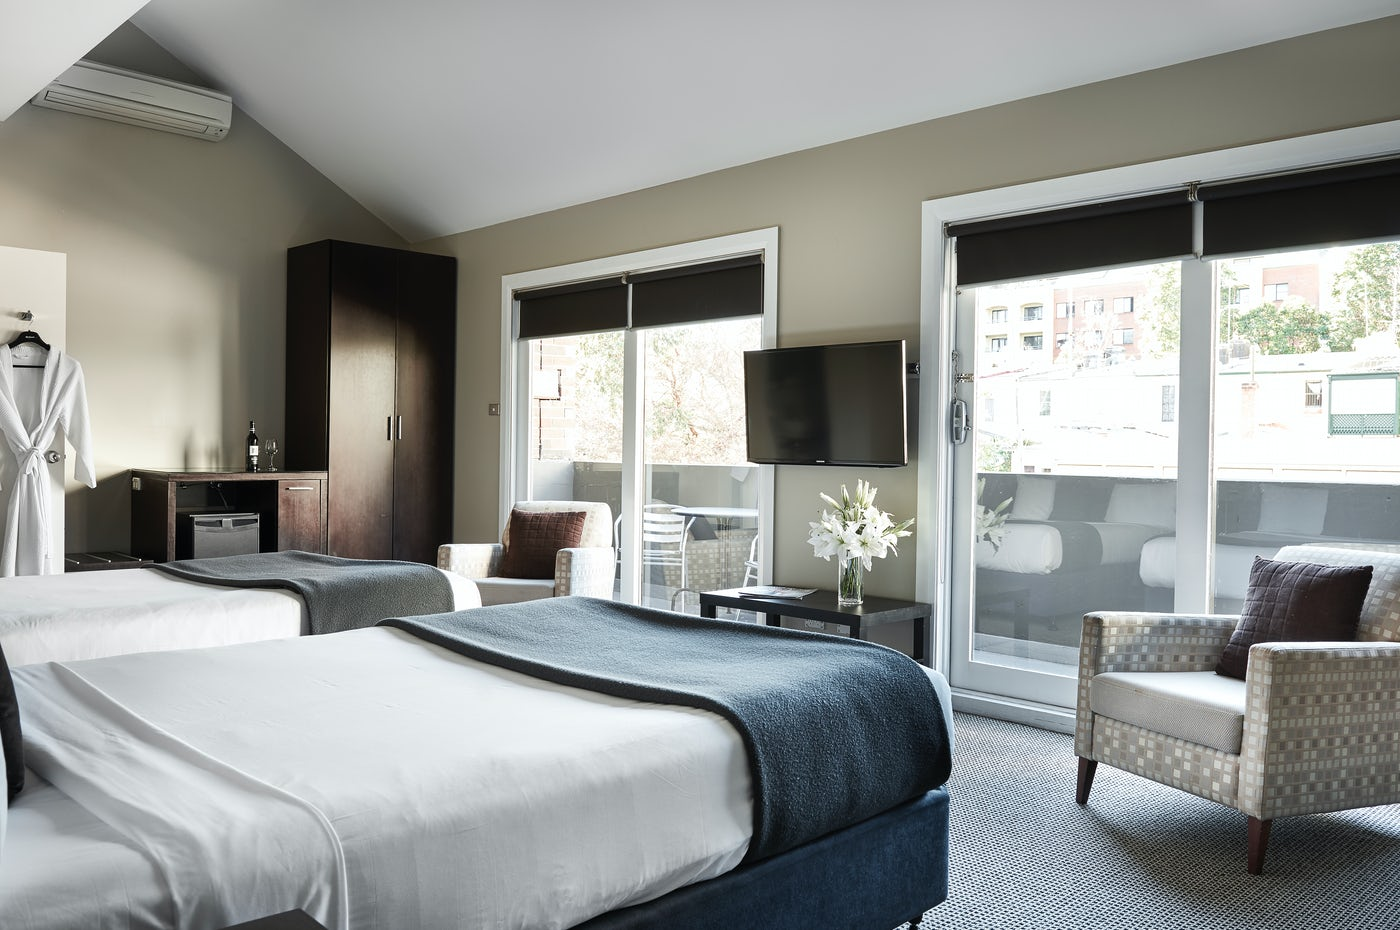 Studio Twin Suite at Boutique Sydney Accommodation - Vulcan Hotel, Ultimo